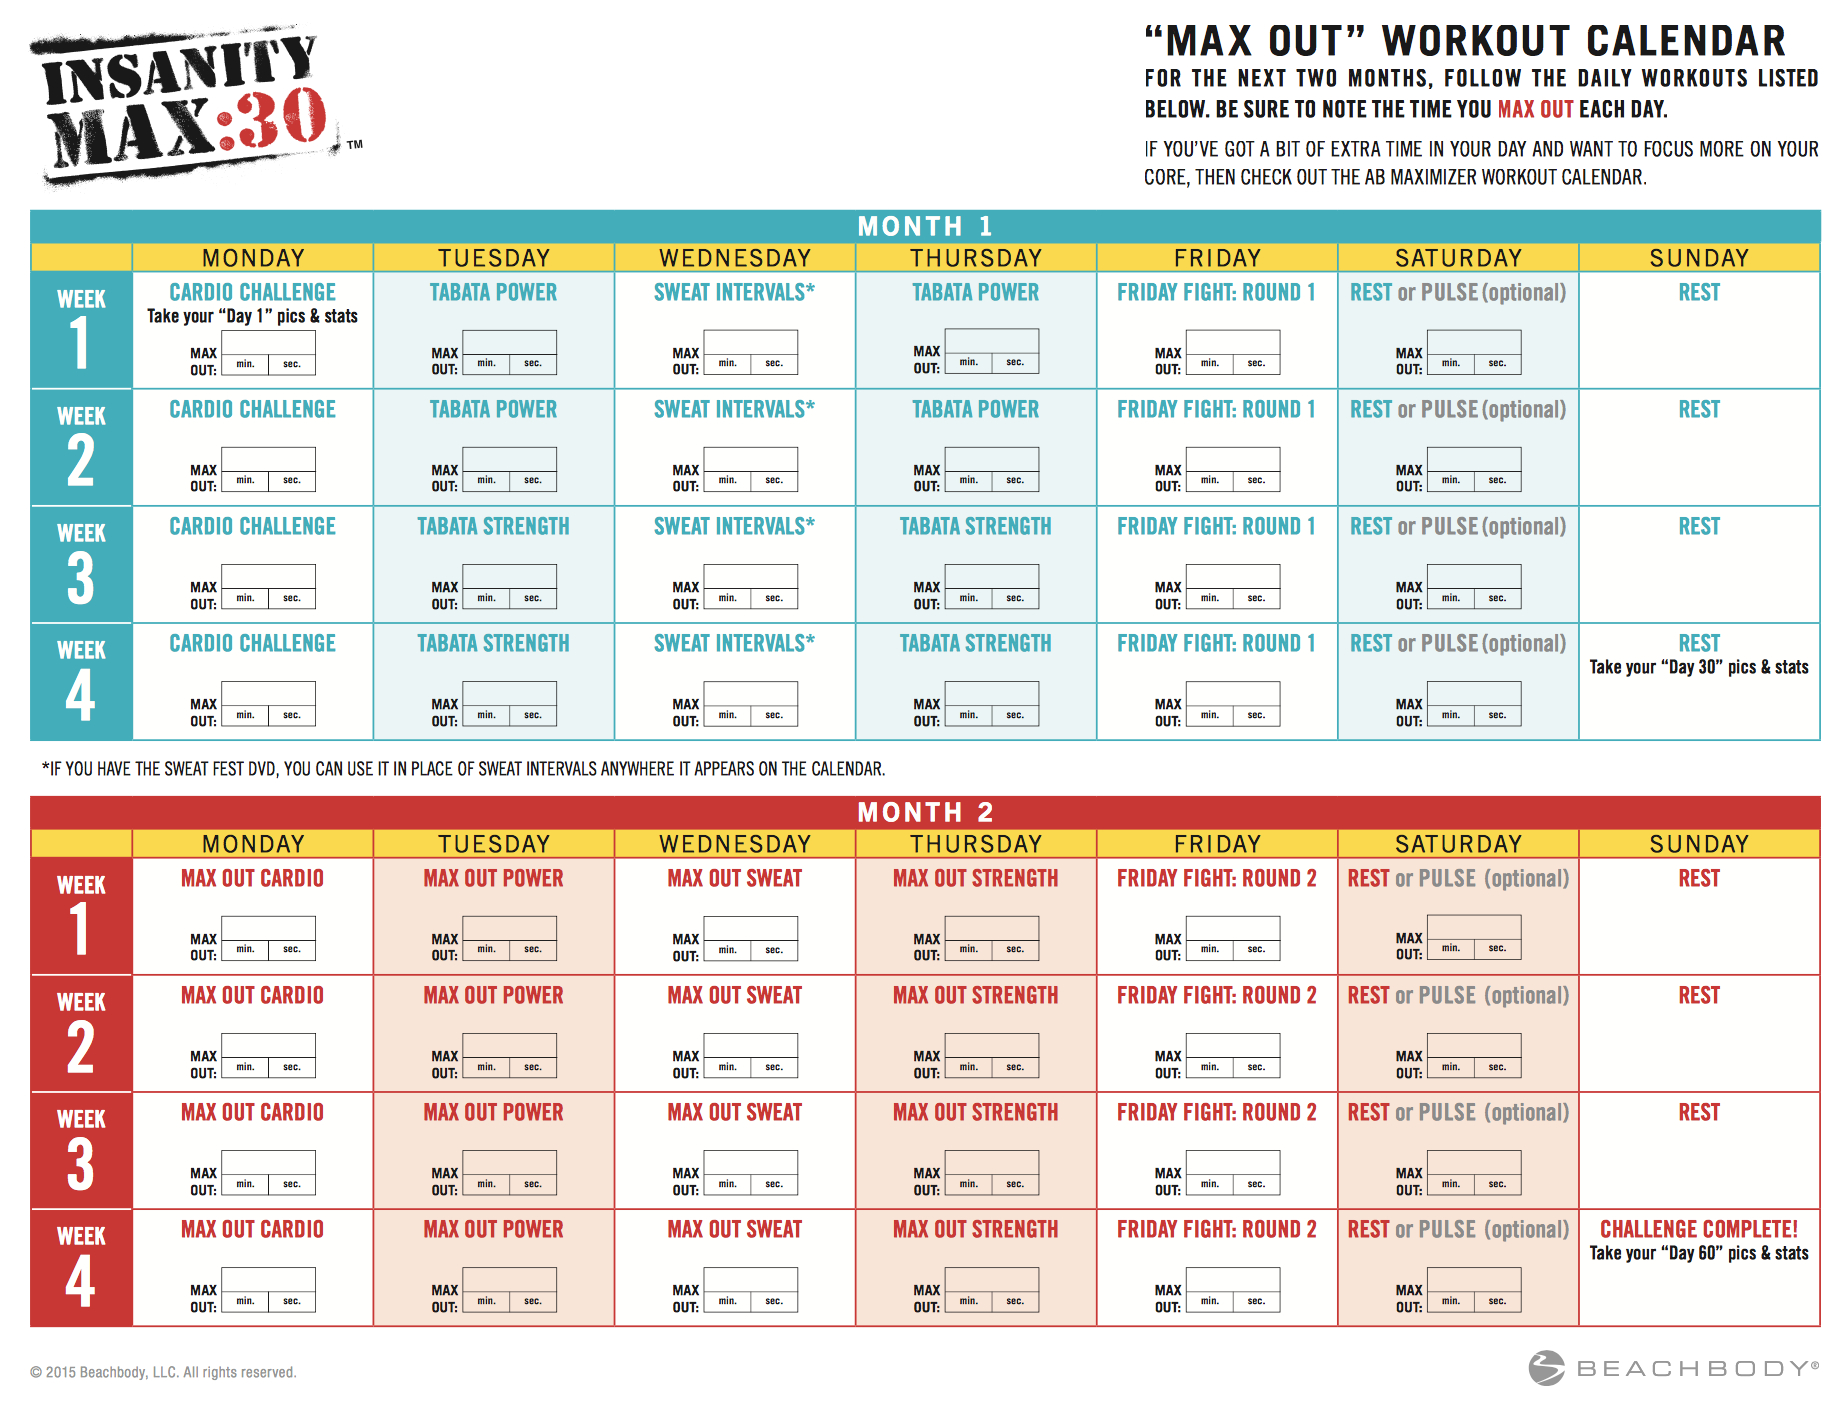 Insanity Max 30 Meal Plan  Focused On Fitness within Insanity Max 30 Calendar Month 2